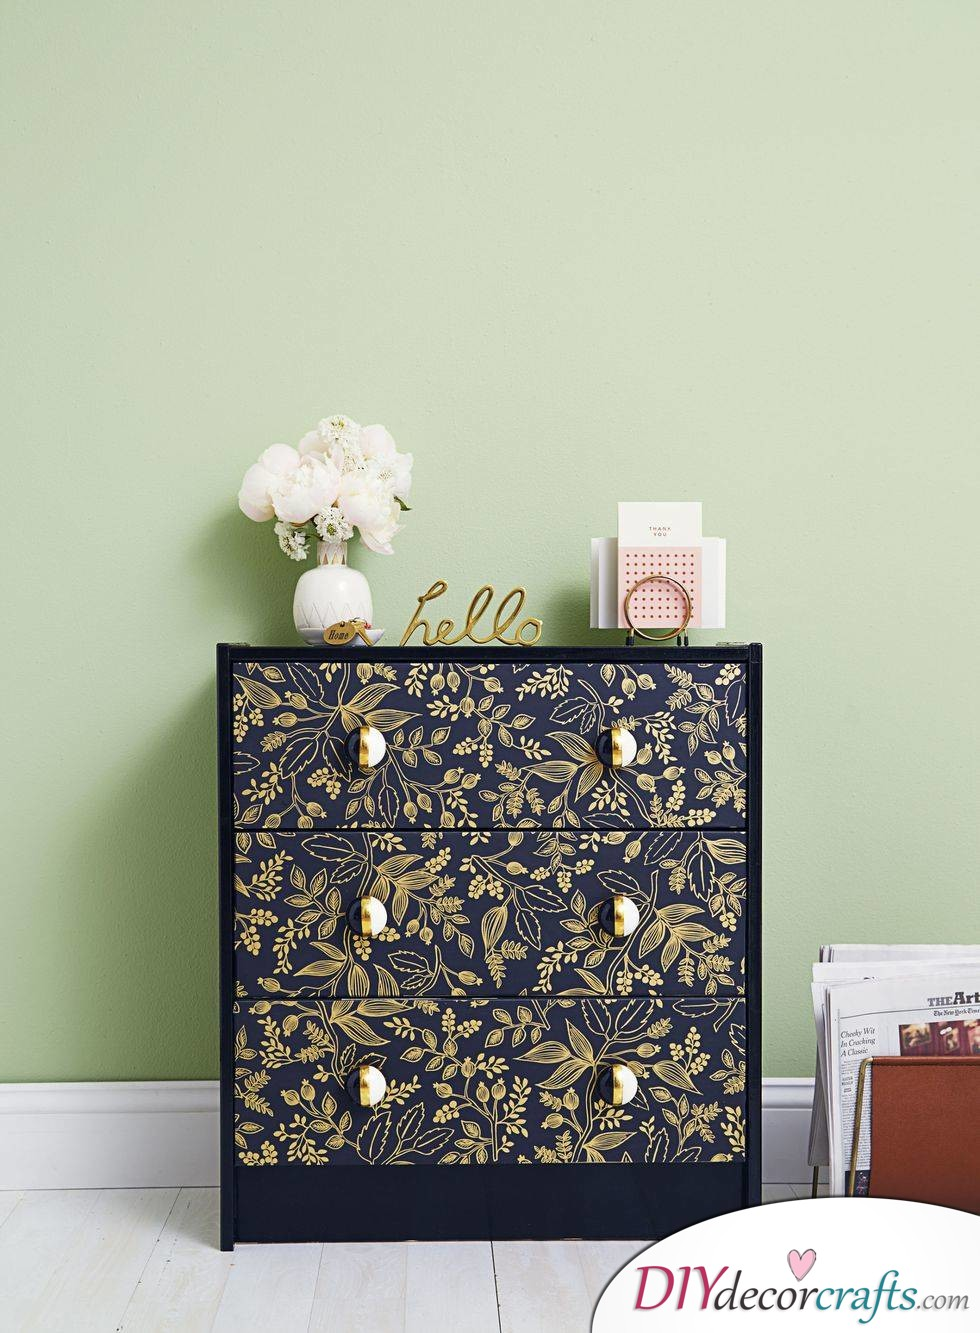 10 Simple DIY Home Decor Ideas, Patterned Dresser